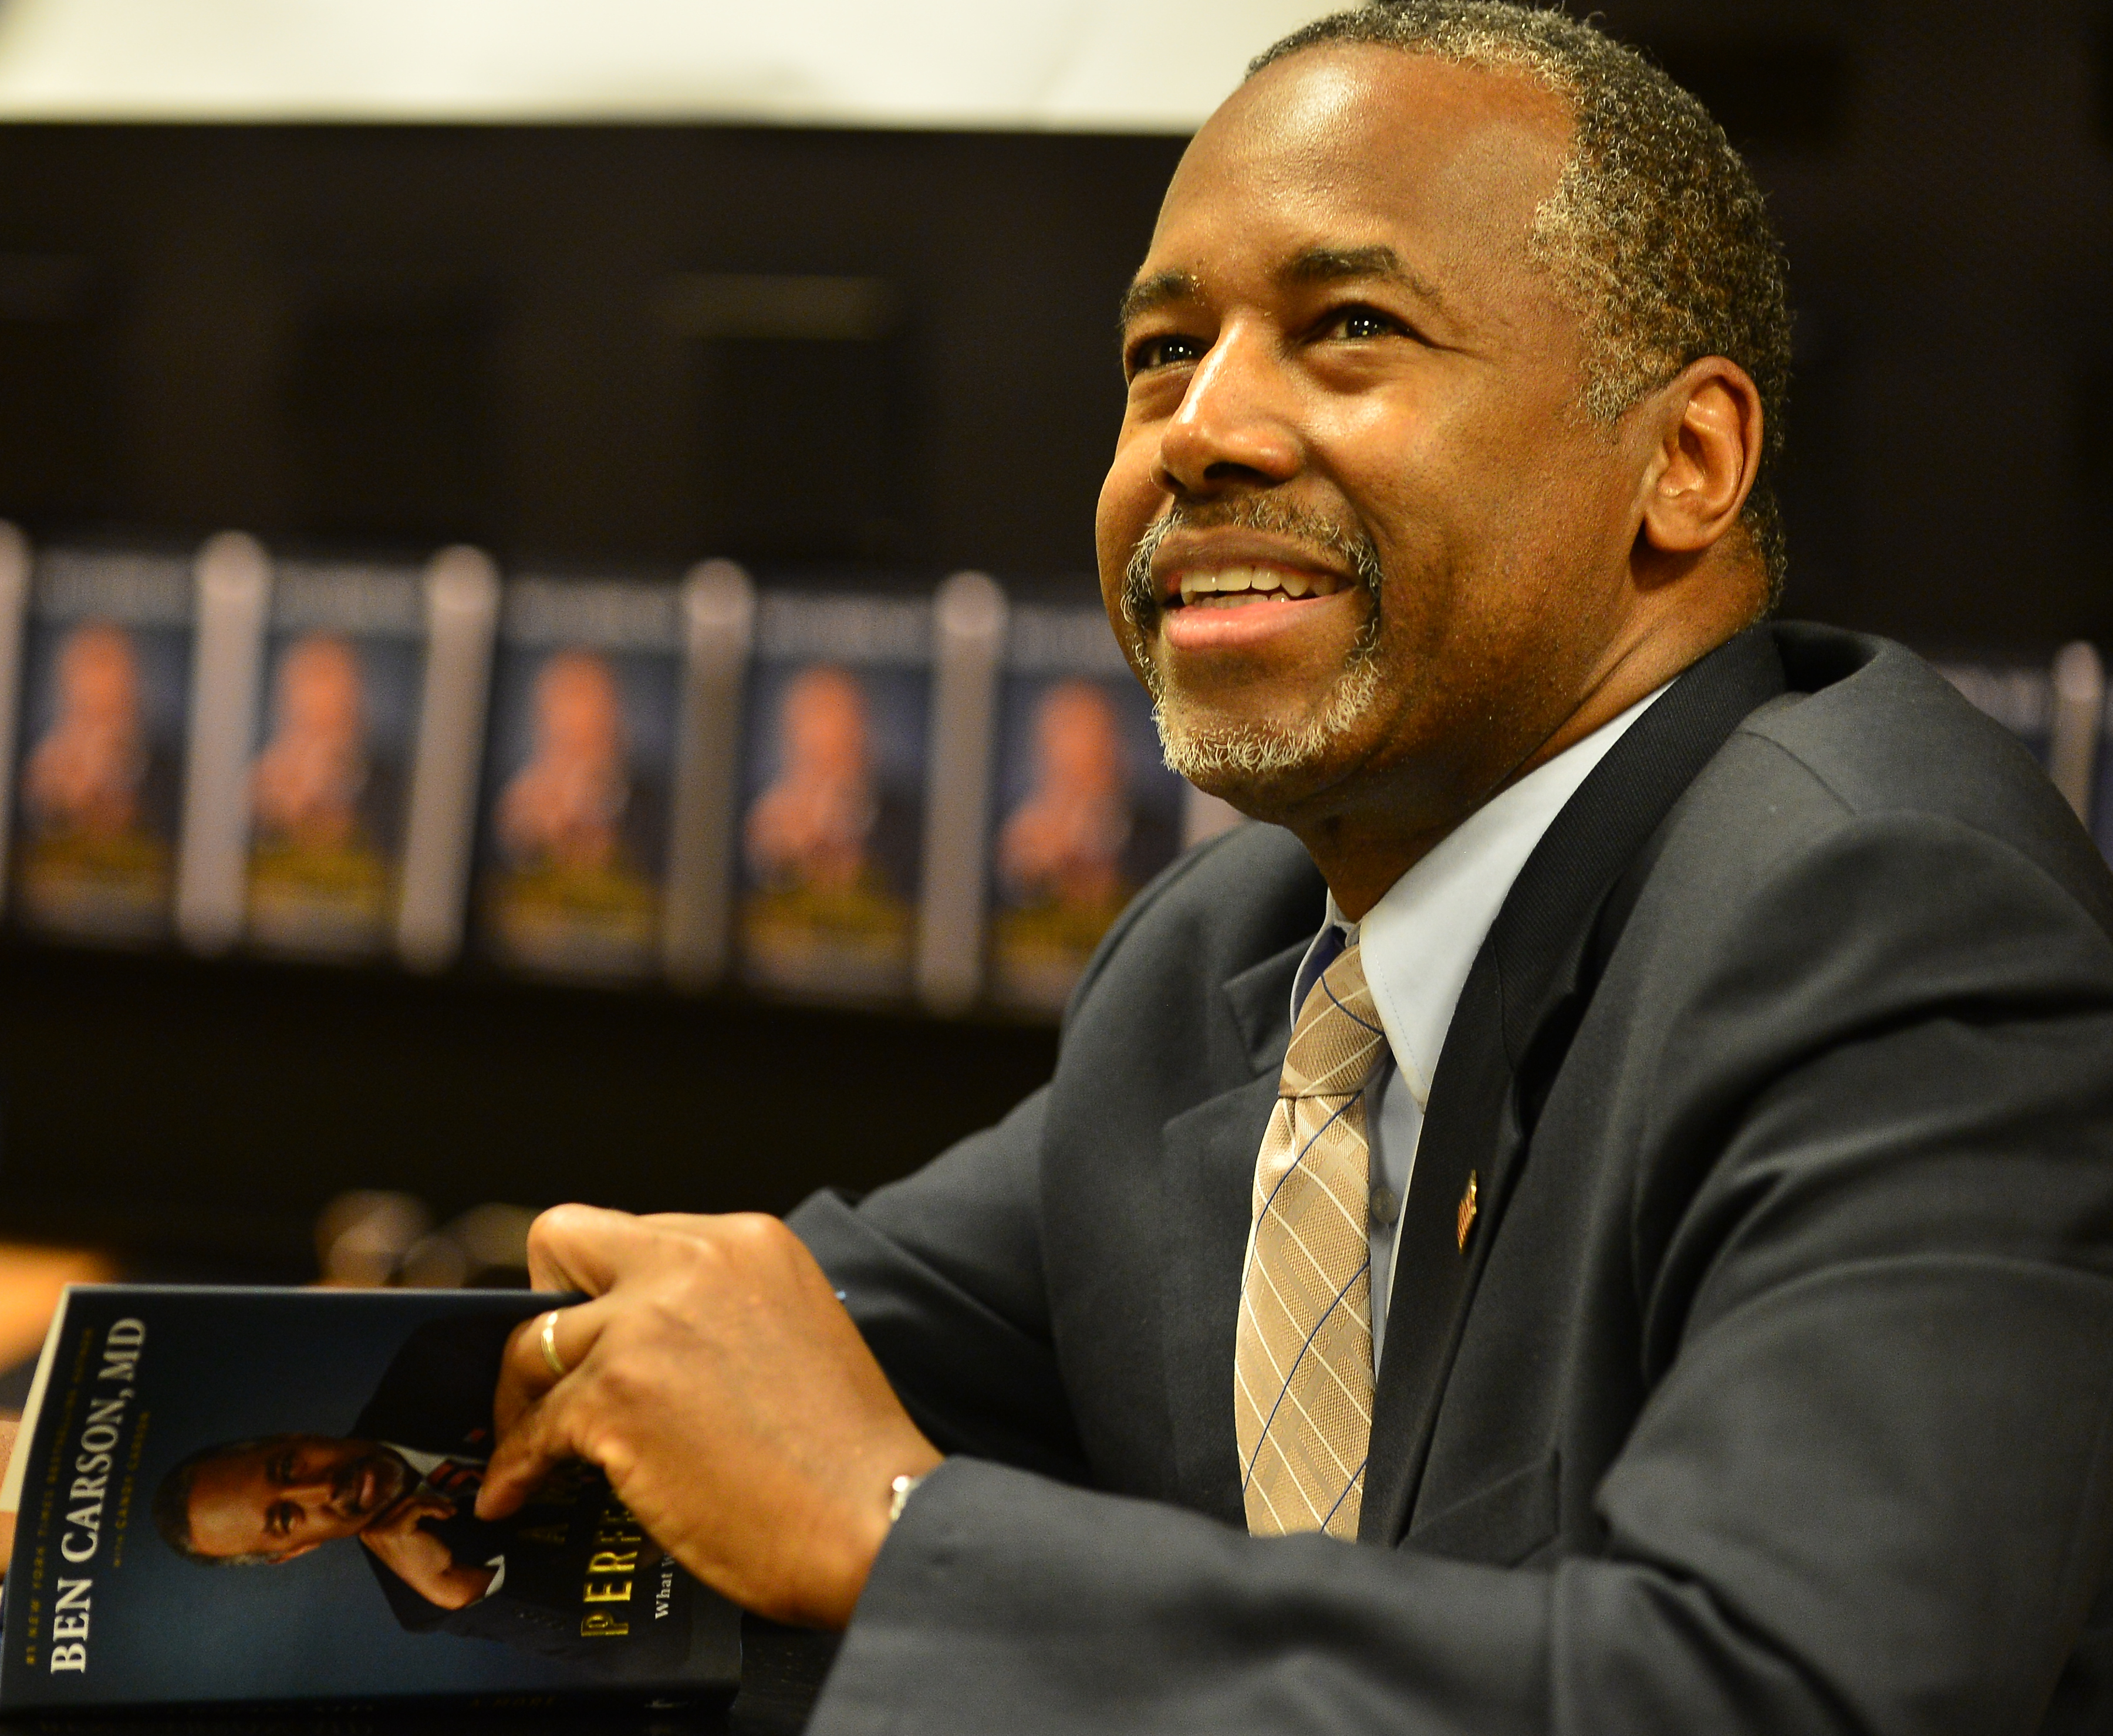 Republican Presidential candidate Dr. Ben Carson is seen at Barnes and Noble where he made an appearance to sign copies of his book  A More Perfect Union: What We the People Can Do to Reclaim Our Constitutional Liberties  on November 5, 2015 in Miami, Florida.